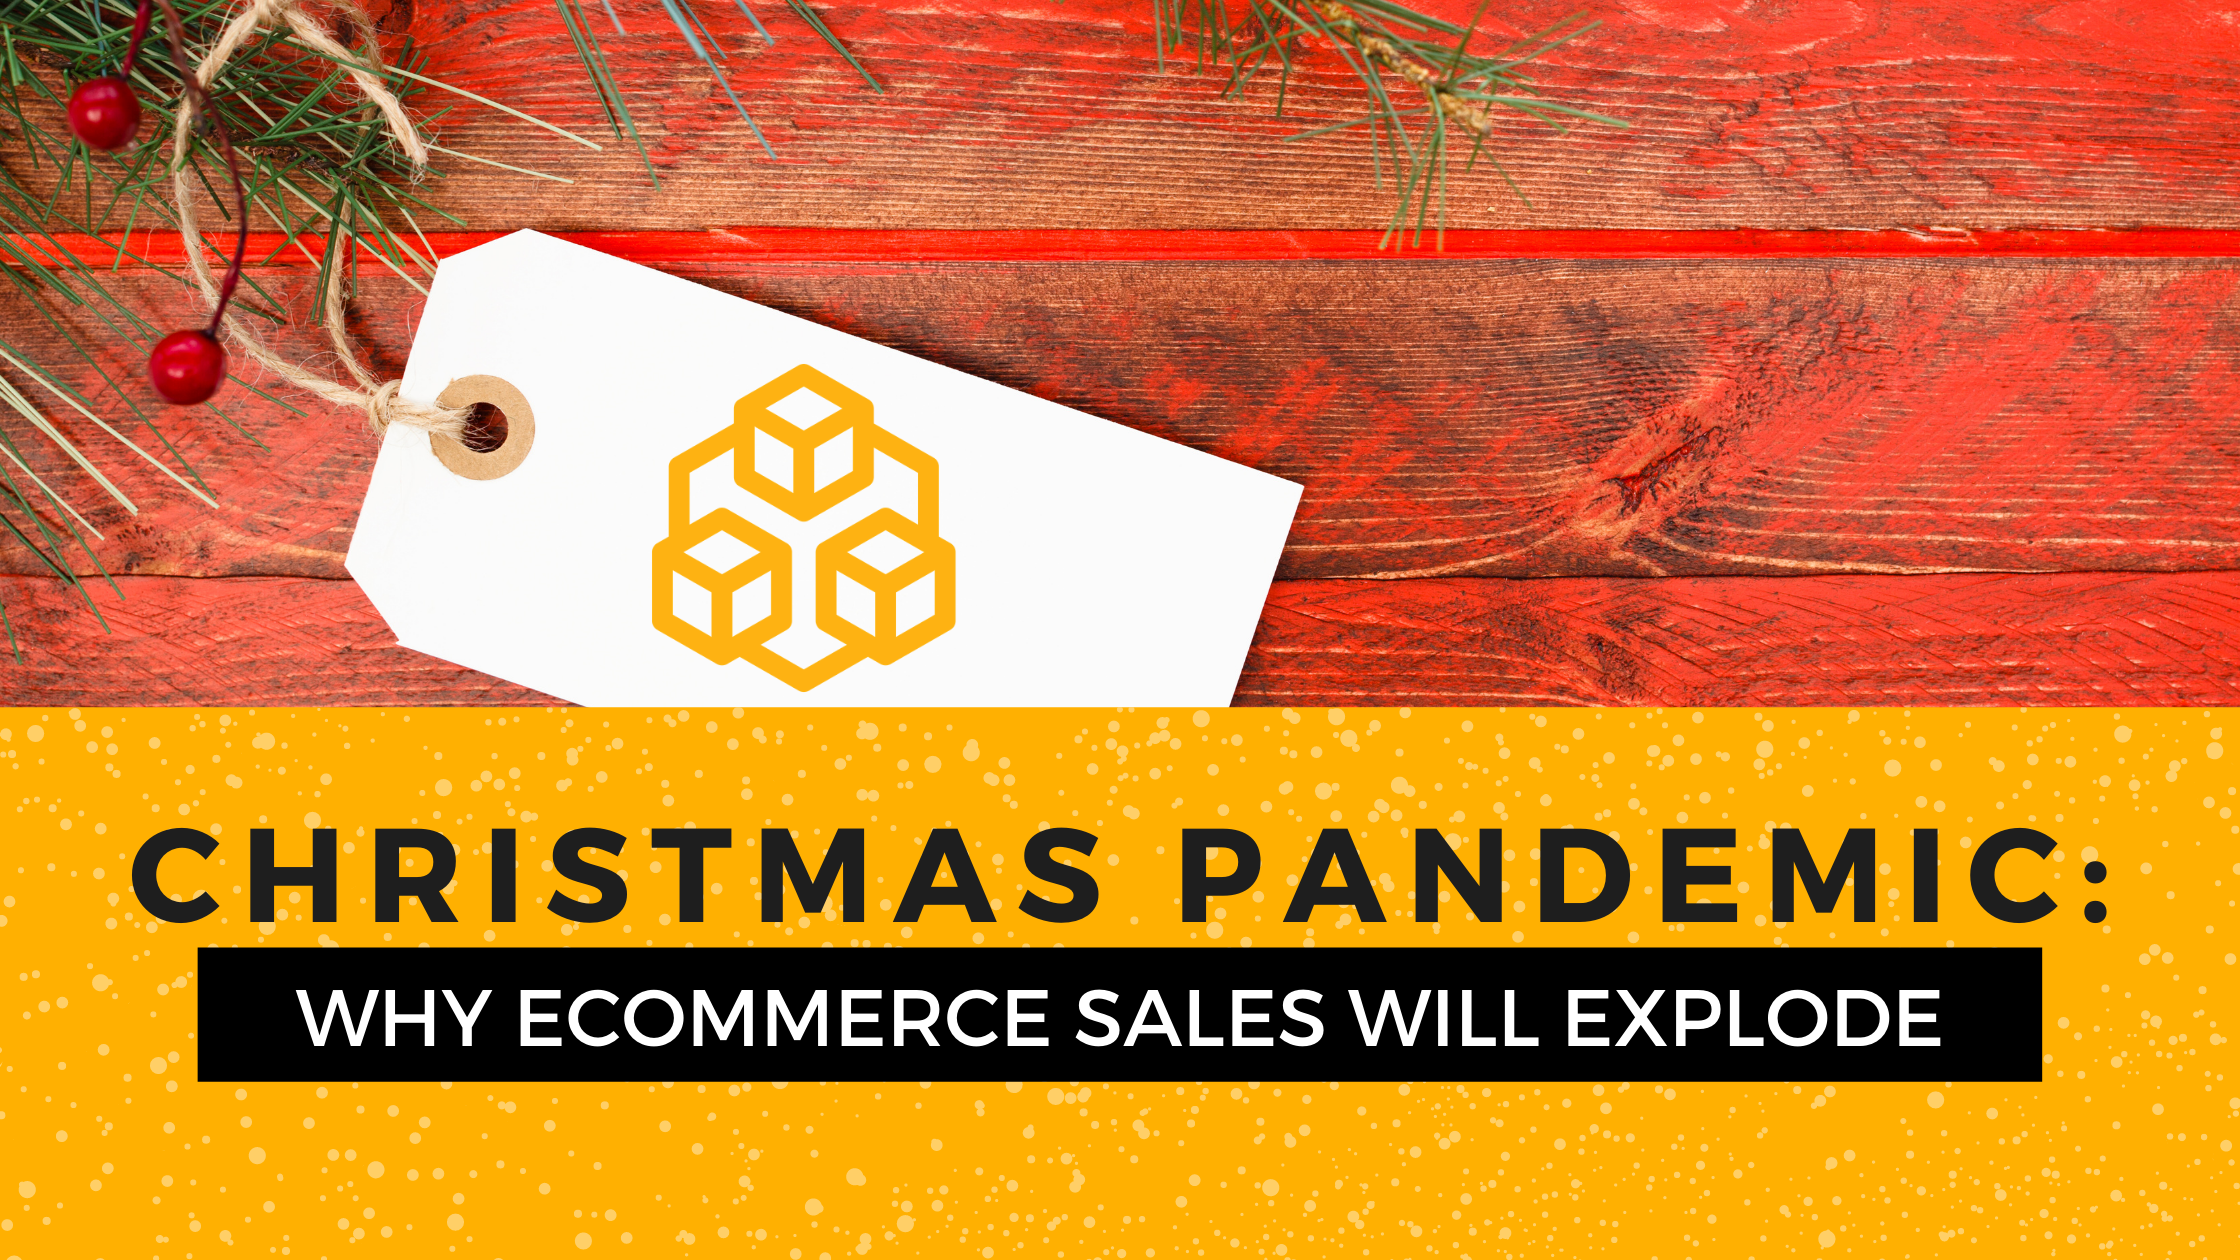 Christmas Pandemic: Why eCommerce Sales Will Explode 2020